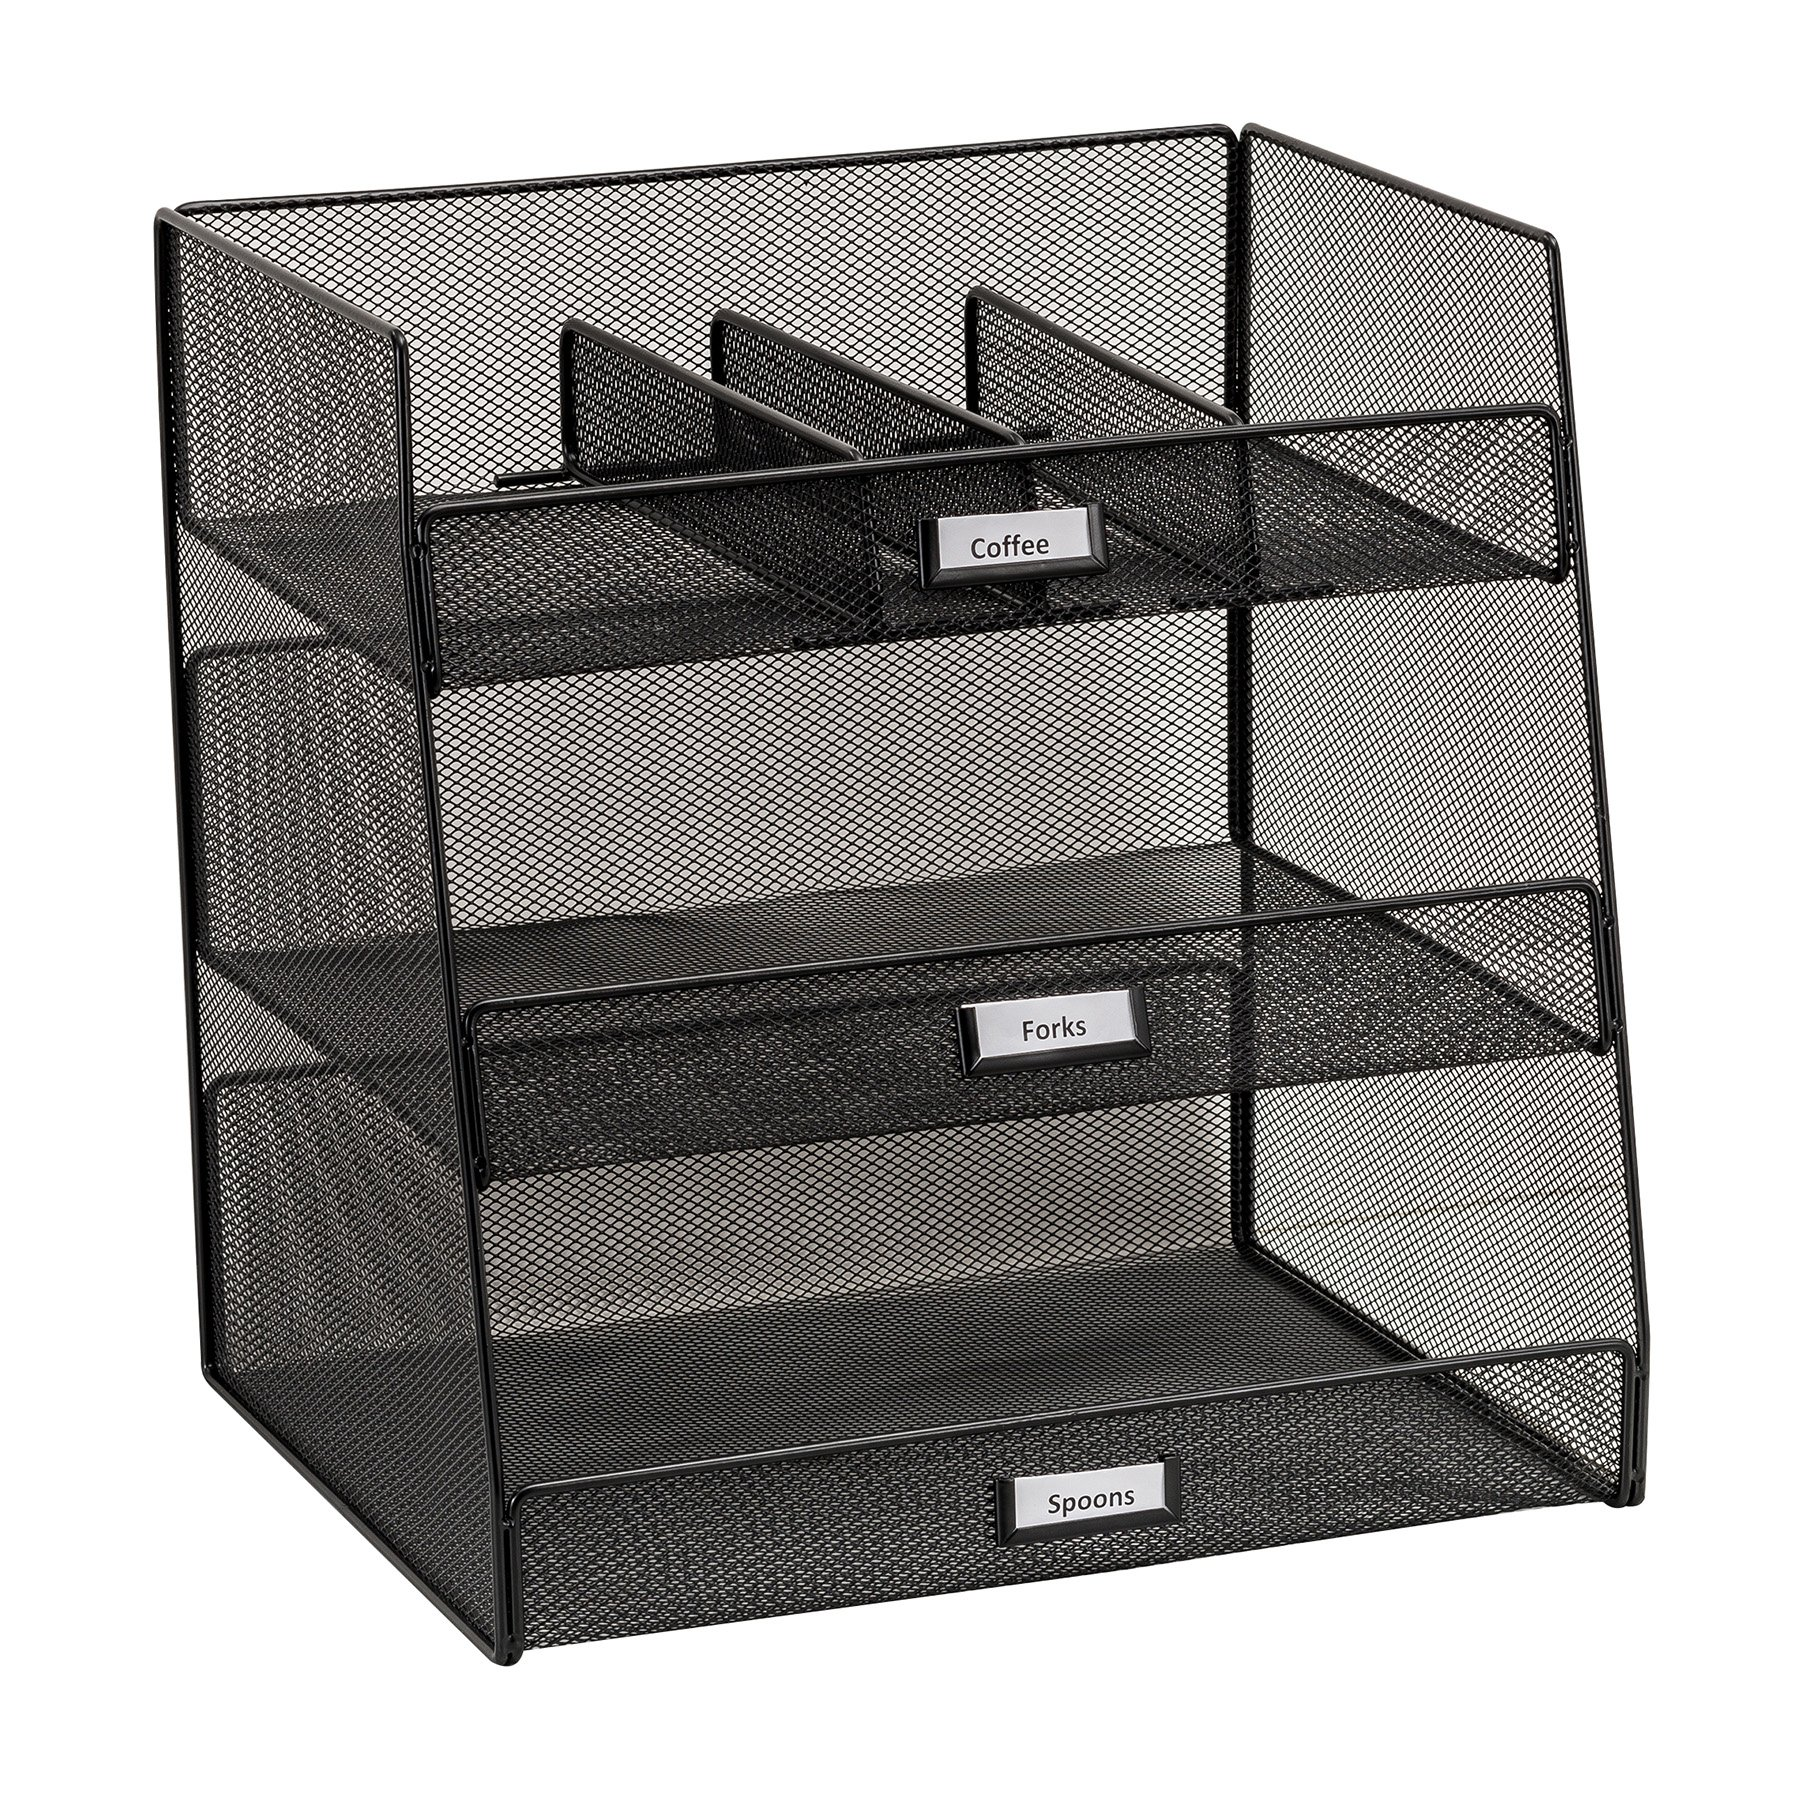 Safco Products 3293BL Onyx Mesh Break Room Supplies Organizer, Black by Safco Products